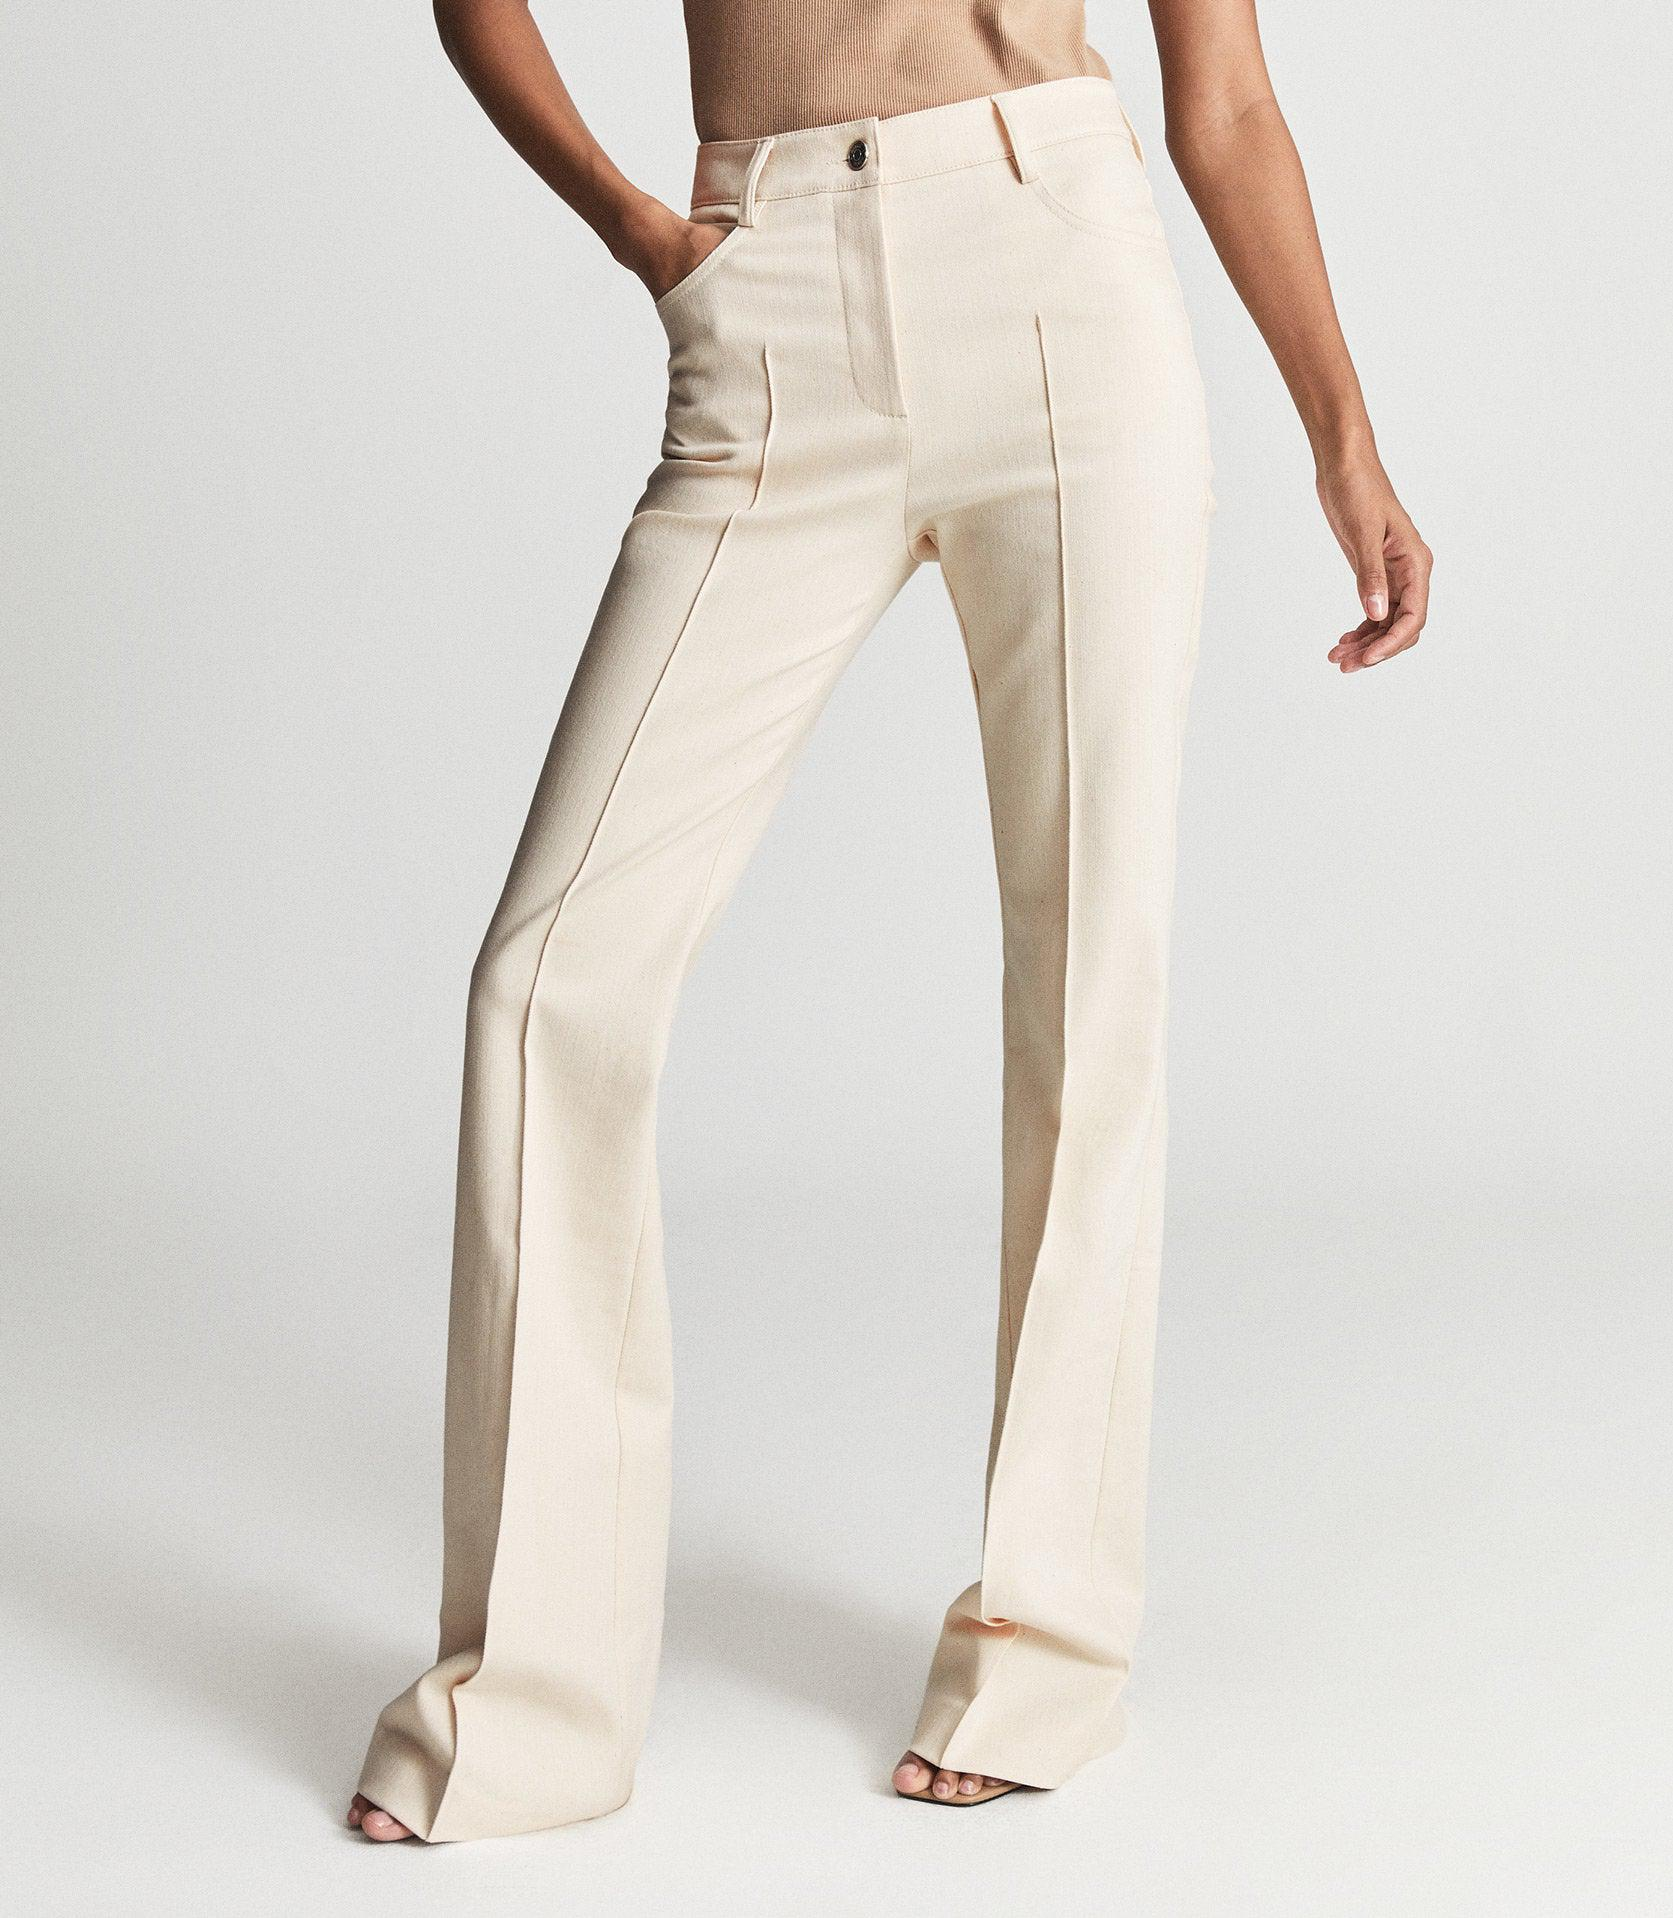 FLORENCE - HIGH RISE FLARED TROUSERS 1